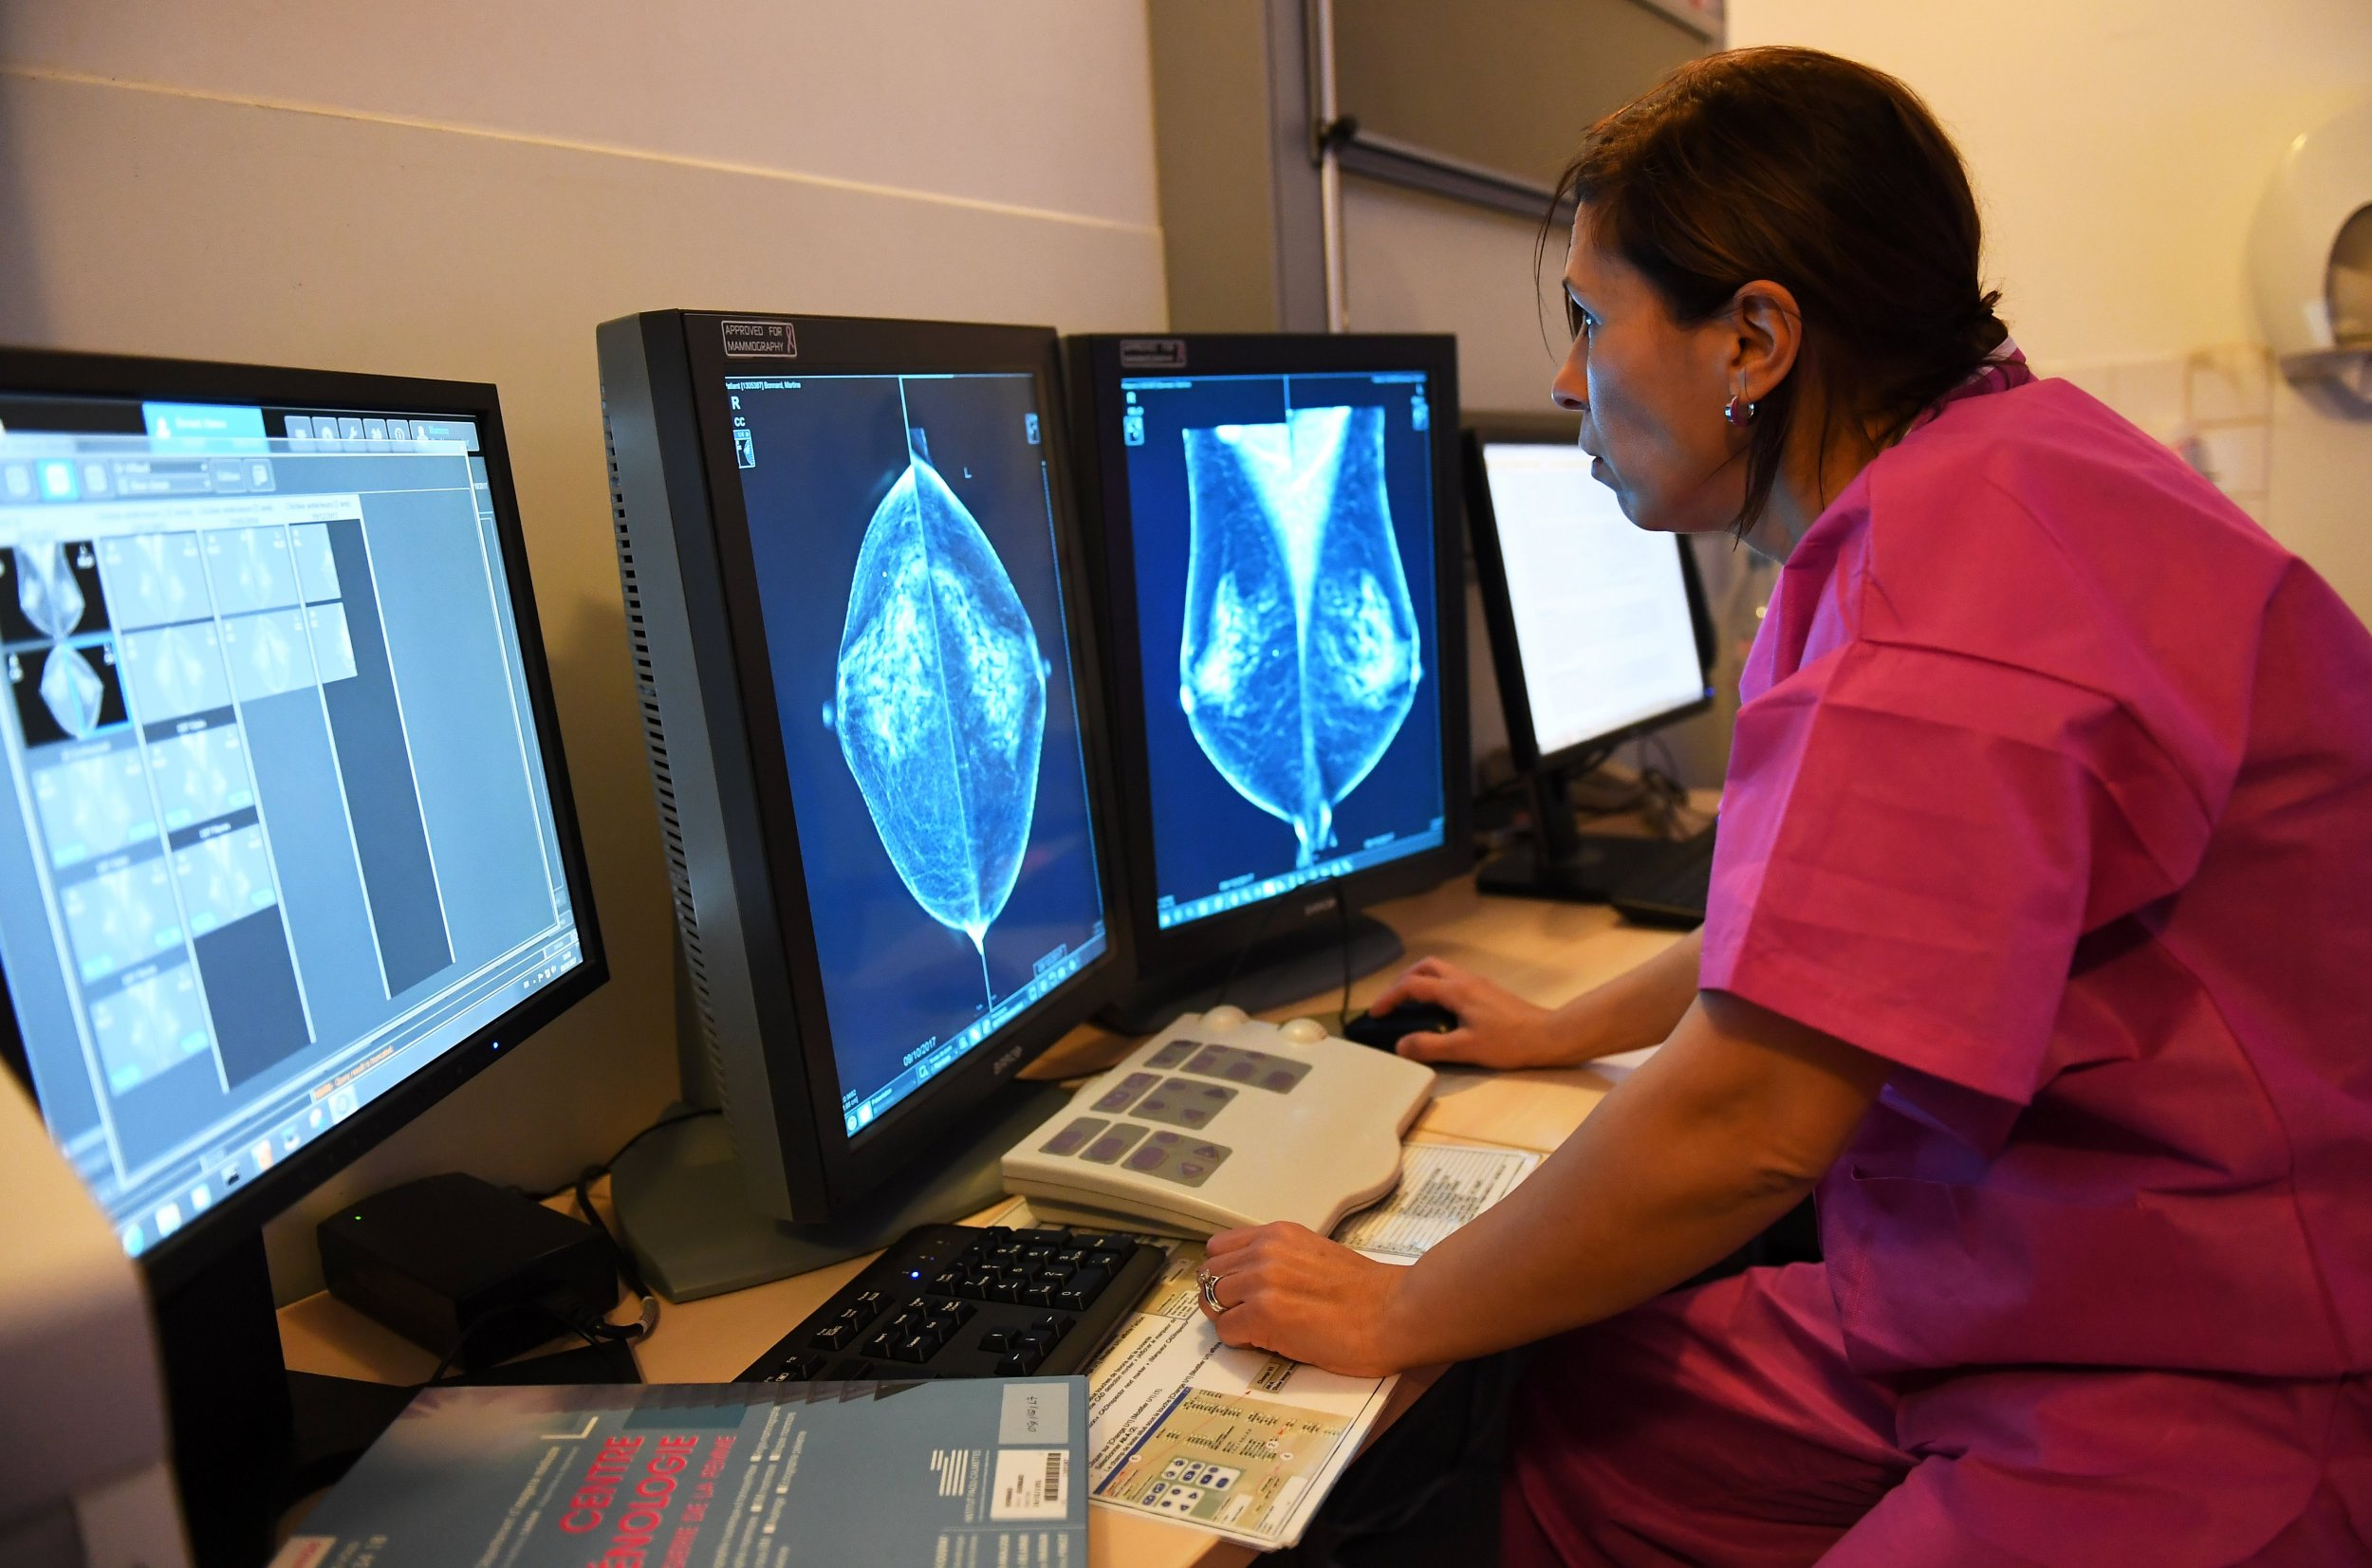 A doctor examines the results of a mammography at the Institute Paoli-Calmettes in France. Experts in the U.S. say physicians need to know more about breast density for breast cancer screening.